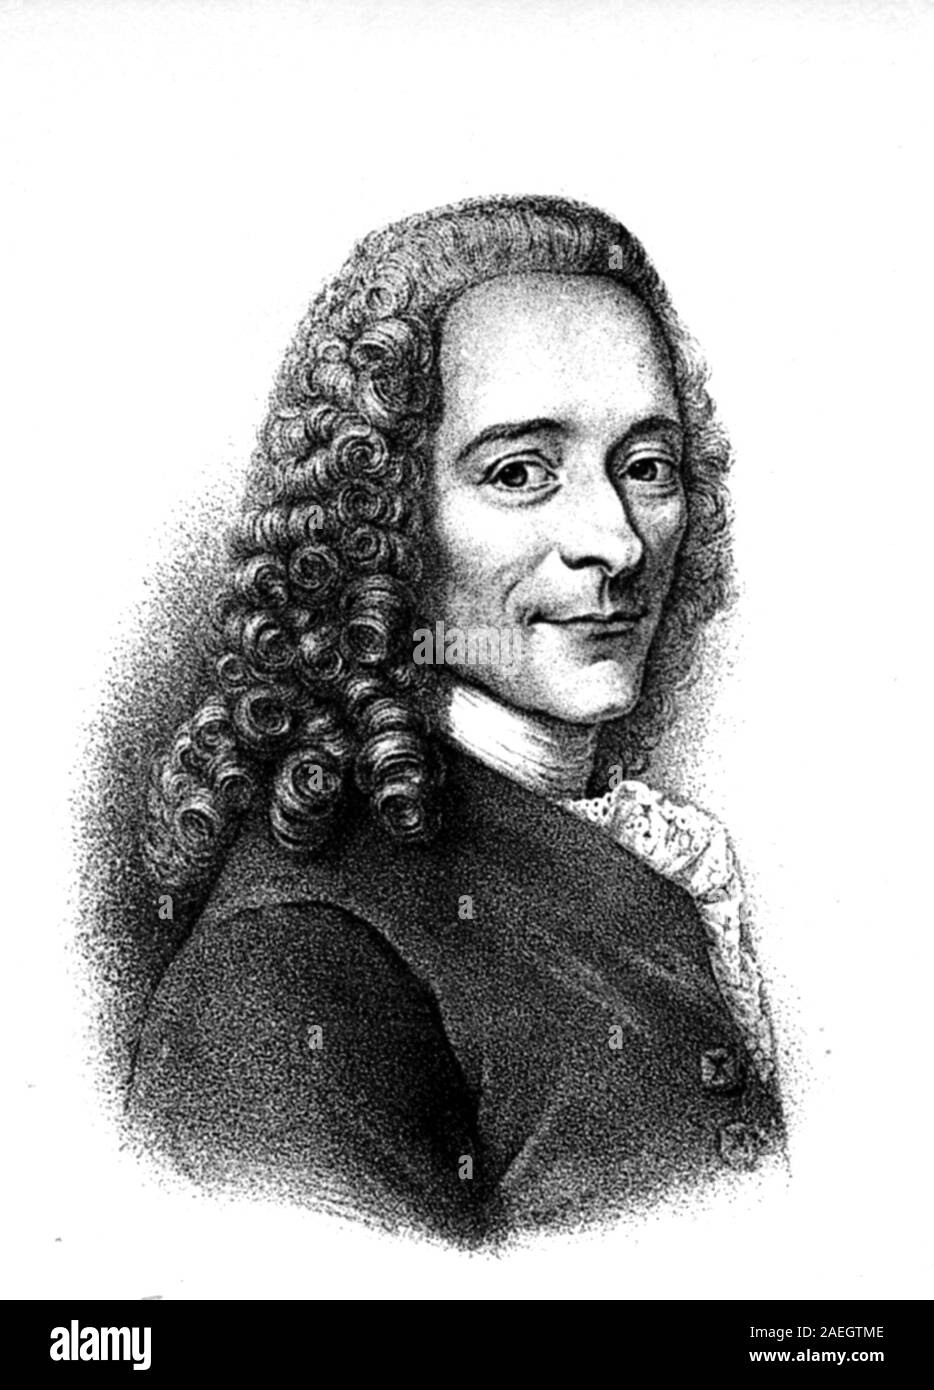 François-Marie Arouet, 21 November 1694 - 30 May 1778, known by his nom de plume Voltaire,s a French Enlightenment writer, historian, and philosopher. /  Voltaire, François-Marie Arouet, französischer Philosoph und Schriftsteller., Digital reproduction of an original print from the 19th century Stock Photo